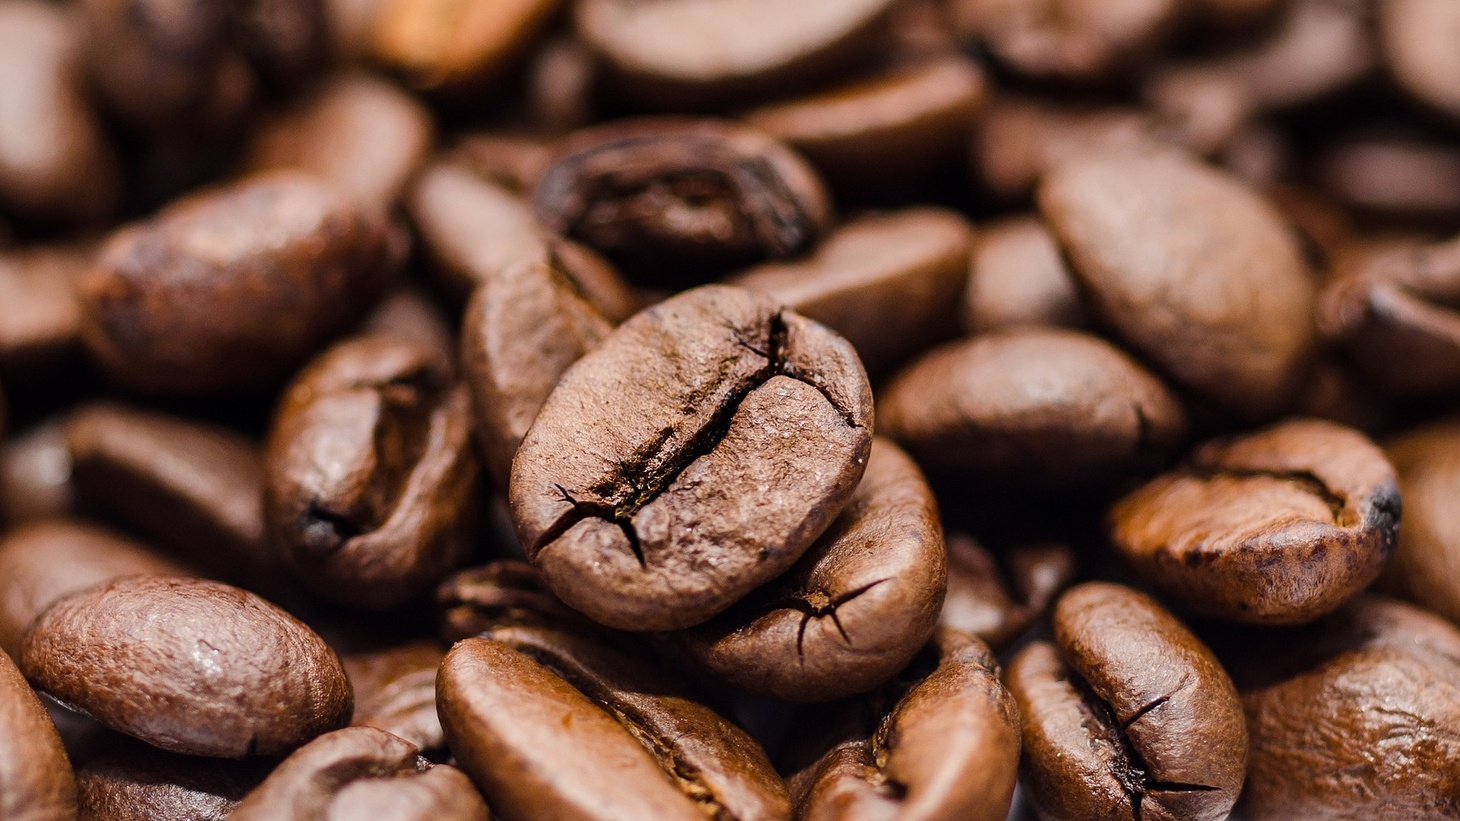 When Maxwell House Coffee started selling the Haggadah for Passover, many believed coffee beans to be non-kosher, resembling forbidden legumes. It took a marketing genius to prove otherwise, says Rabbi Carol Balin.